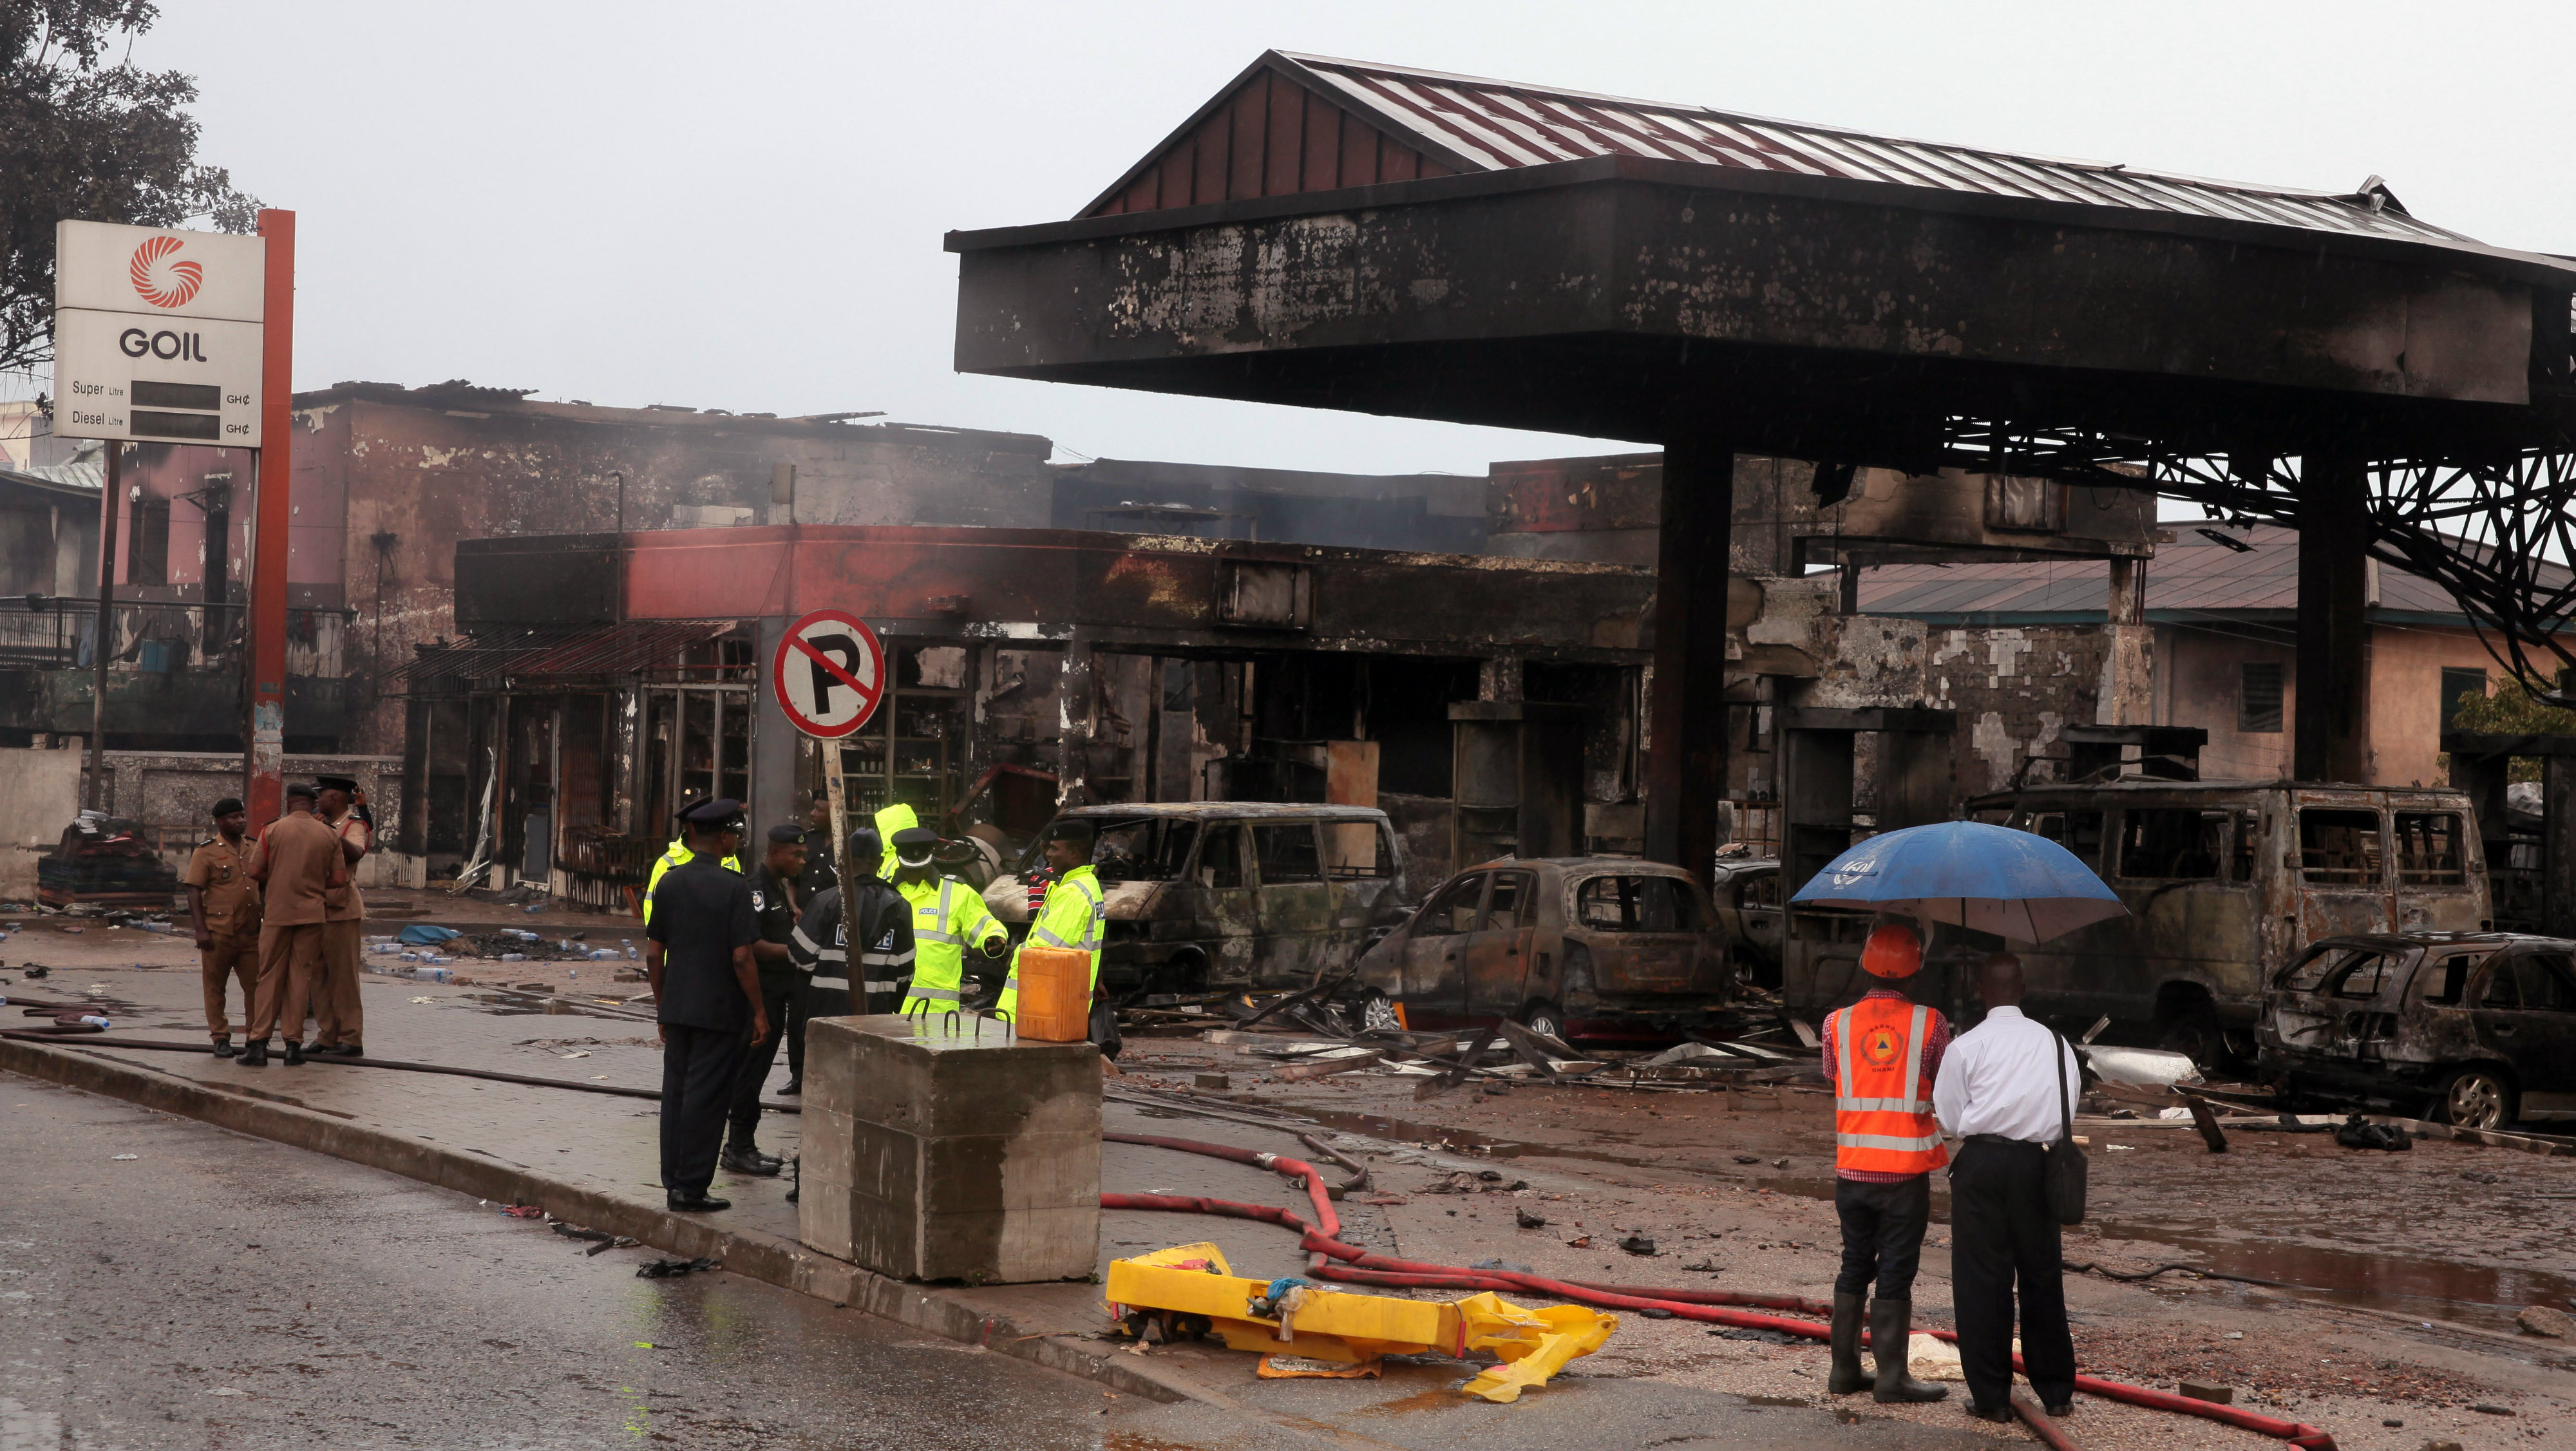 Ghana security personnel stand near the gas station that exploded in Accra, Ghana, Thursday, June 4, 2015. Flooding in Ghana's capital swept stored fuel into a nearby fire, setting off a huge explosion at a gas station that killed scores of people and set alight neighboring buildings, authorities said Thursday. (AP Photo/Christian Thompson)